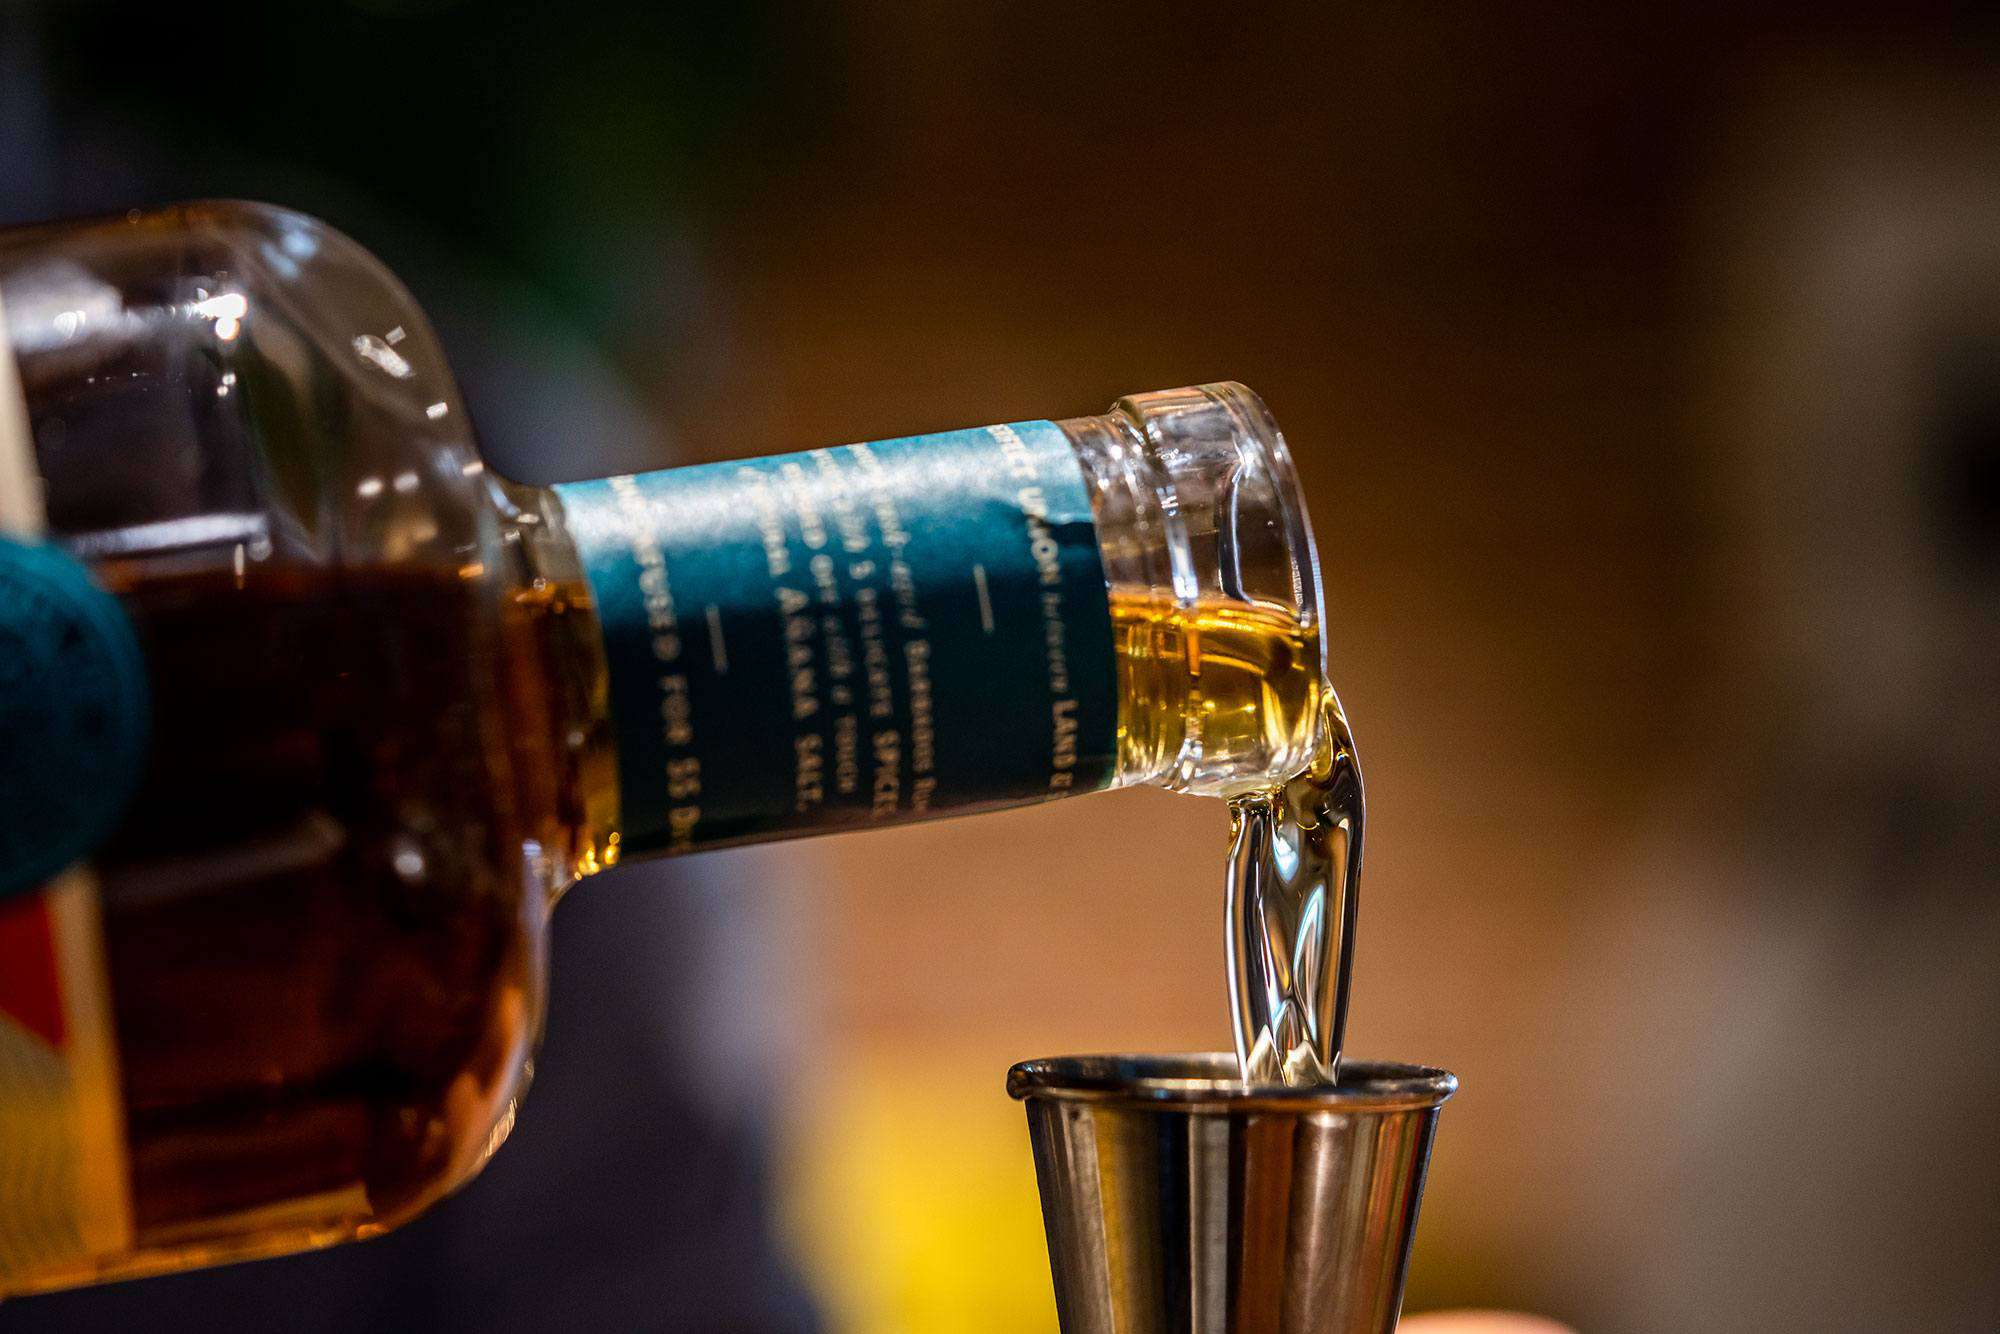 Pouring Spirited Union rum in jigger